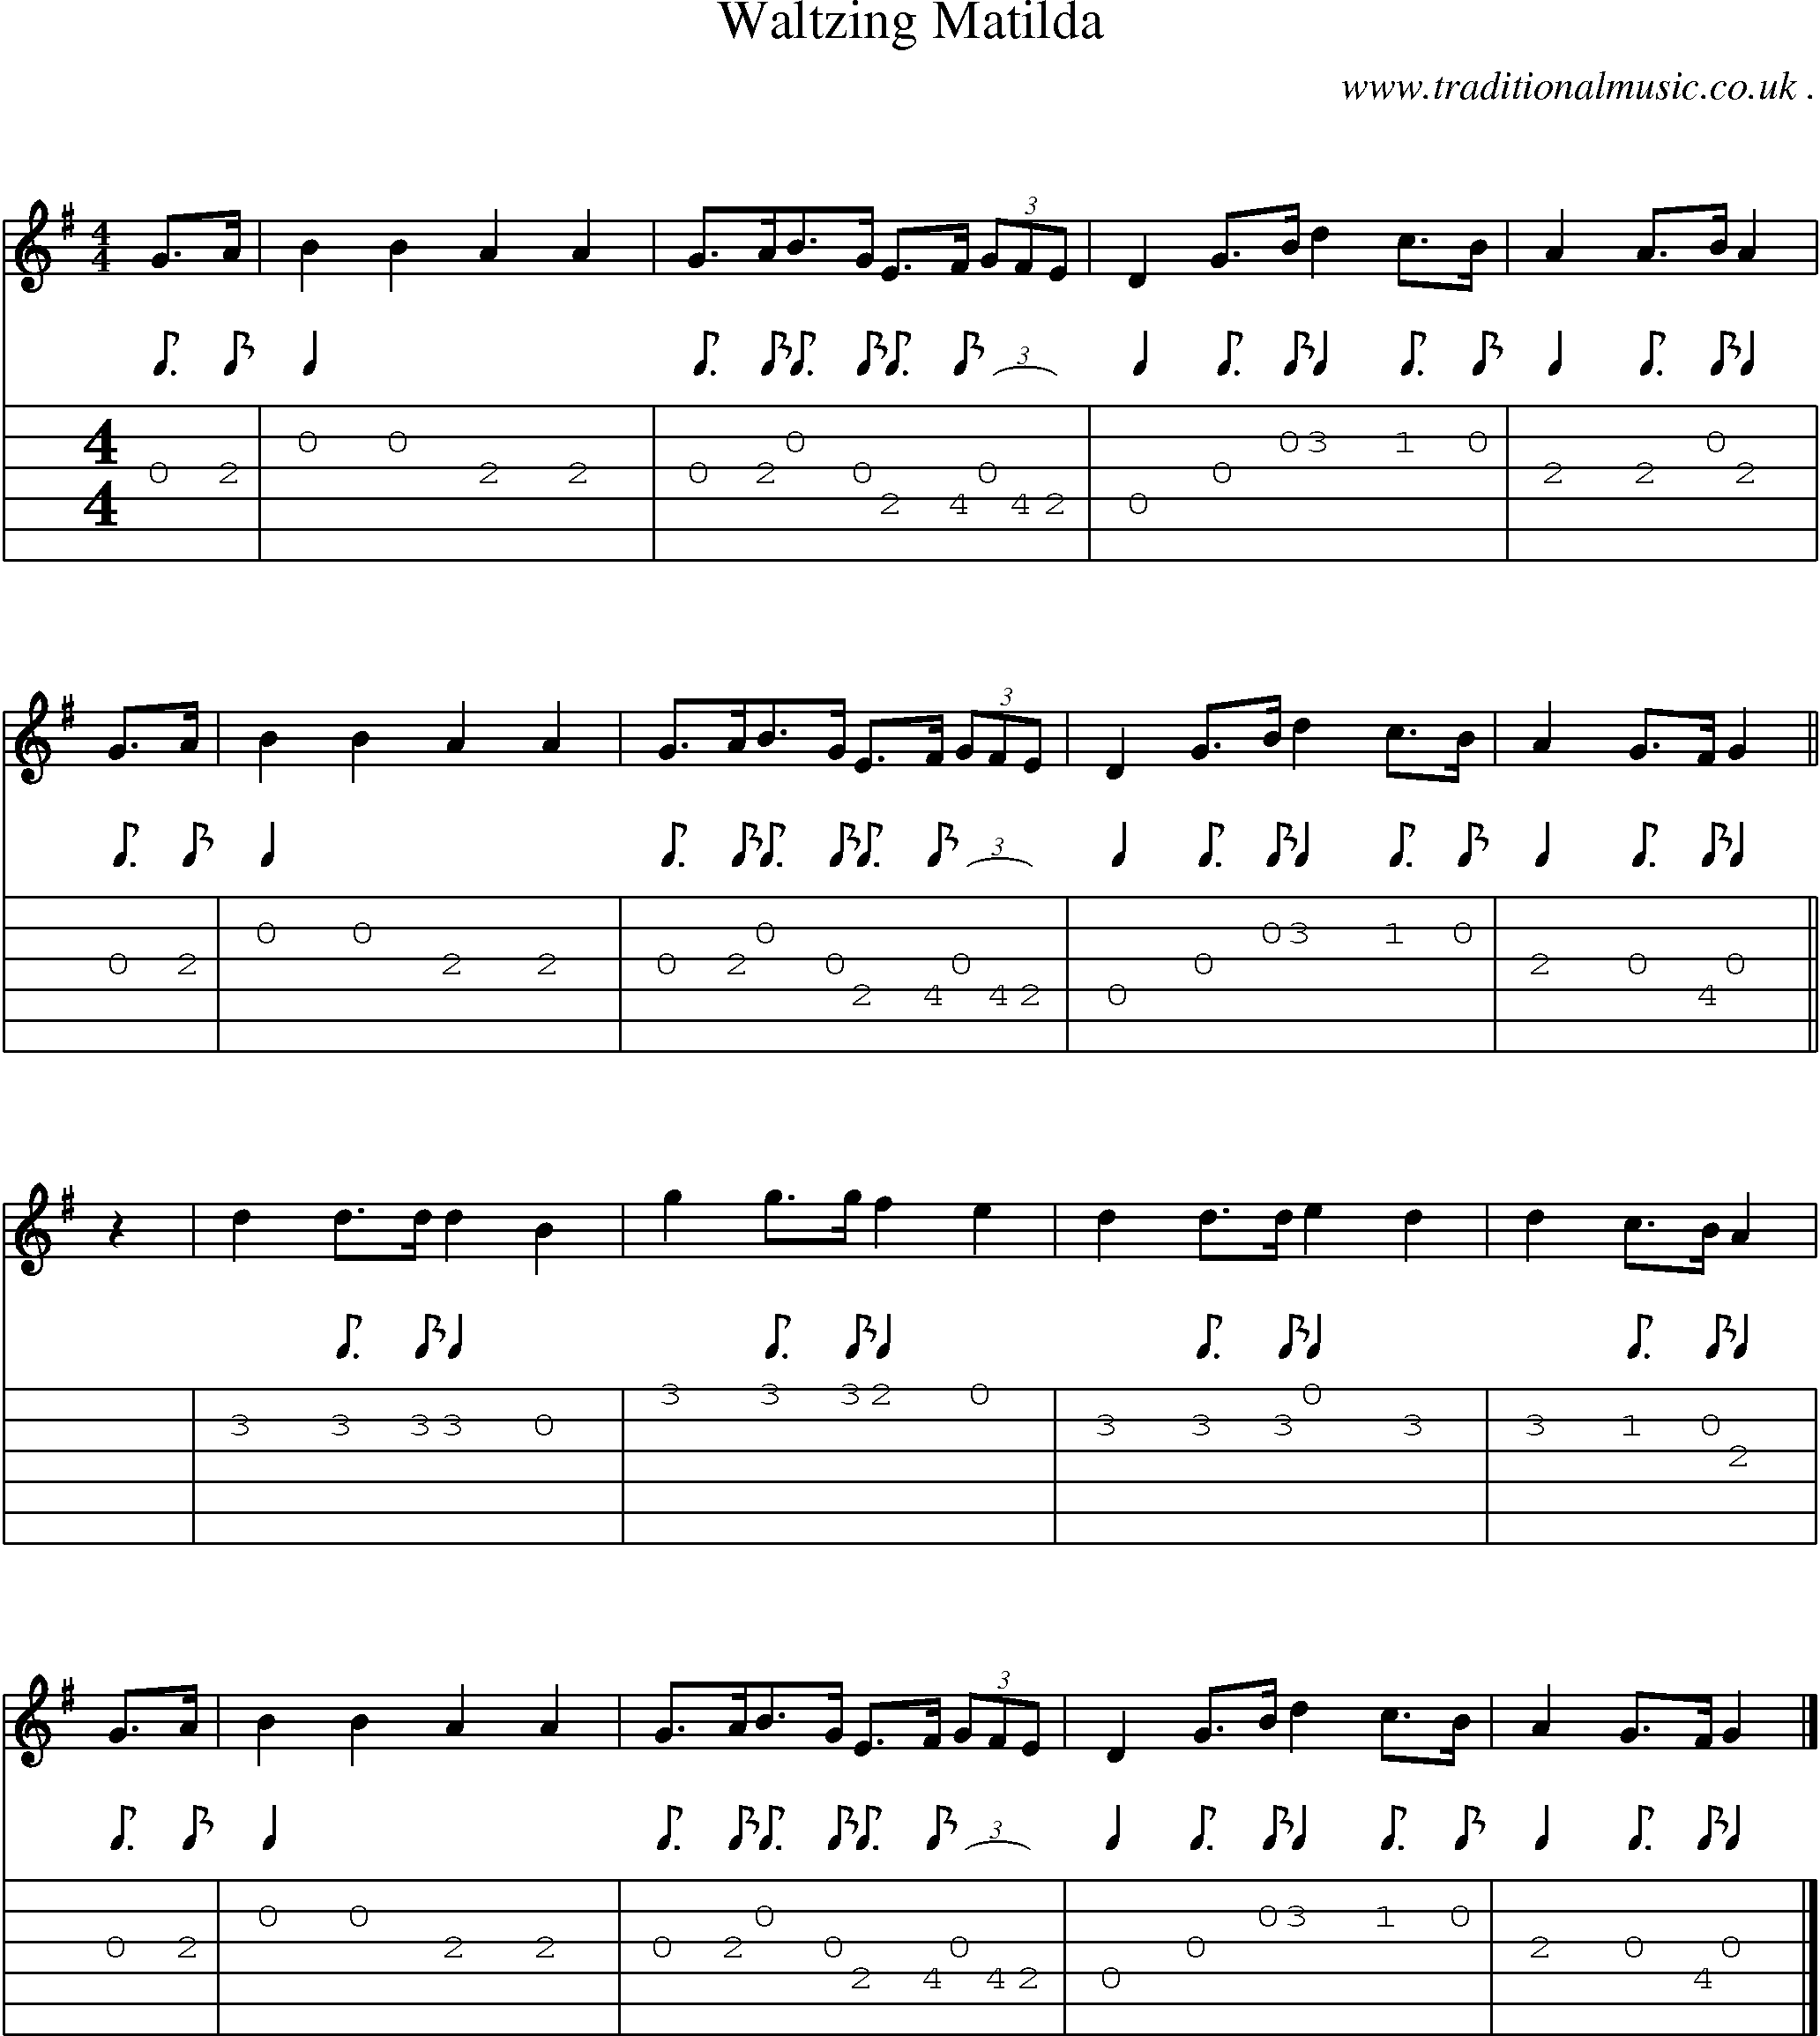 Scottish Tune Sheetmusic Midi Mp3 Guitar Chords Tabs Waltzing